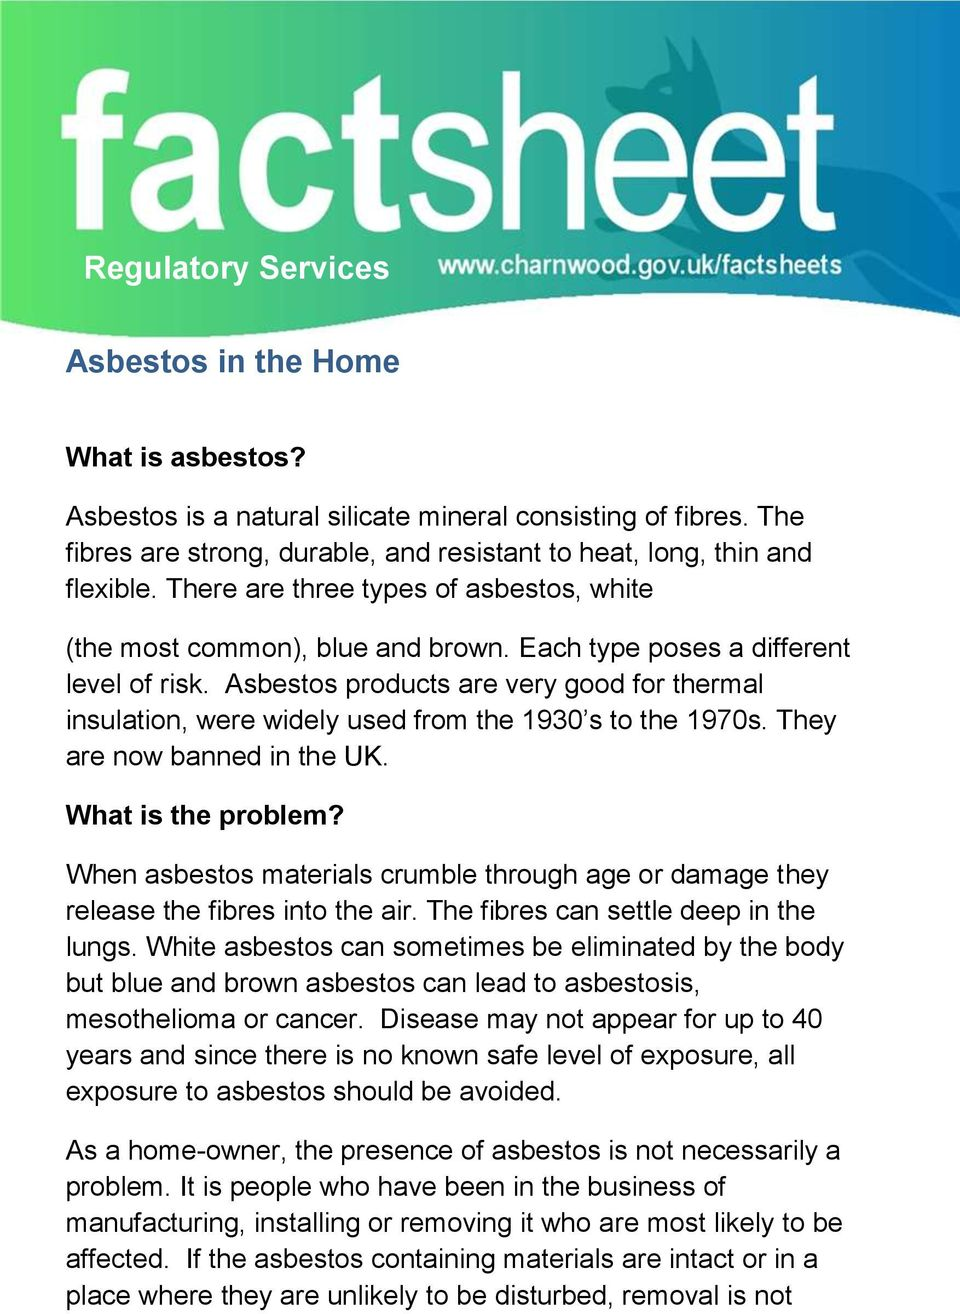 Asbestos products are very good for thermal insulation, were widely used from the 1930 s to the 1970s. They are now banned in the UK. What is the problem?